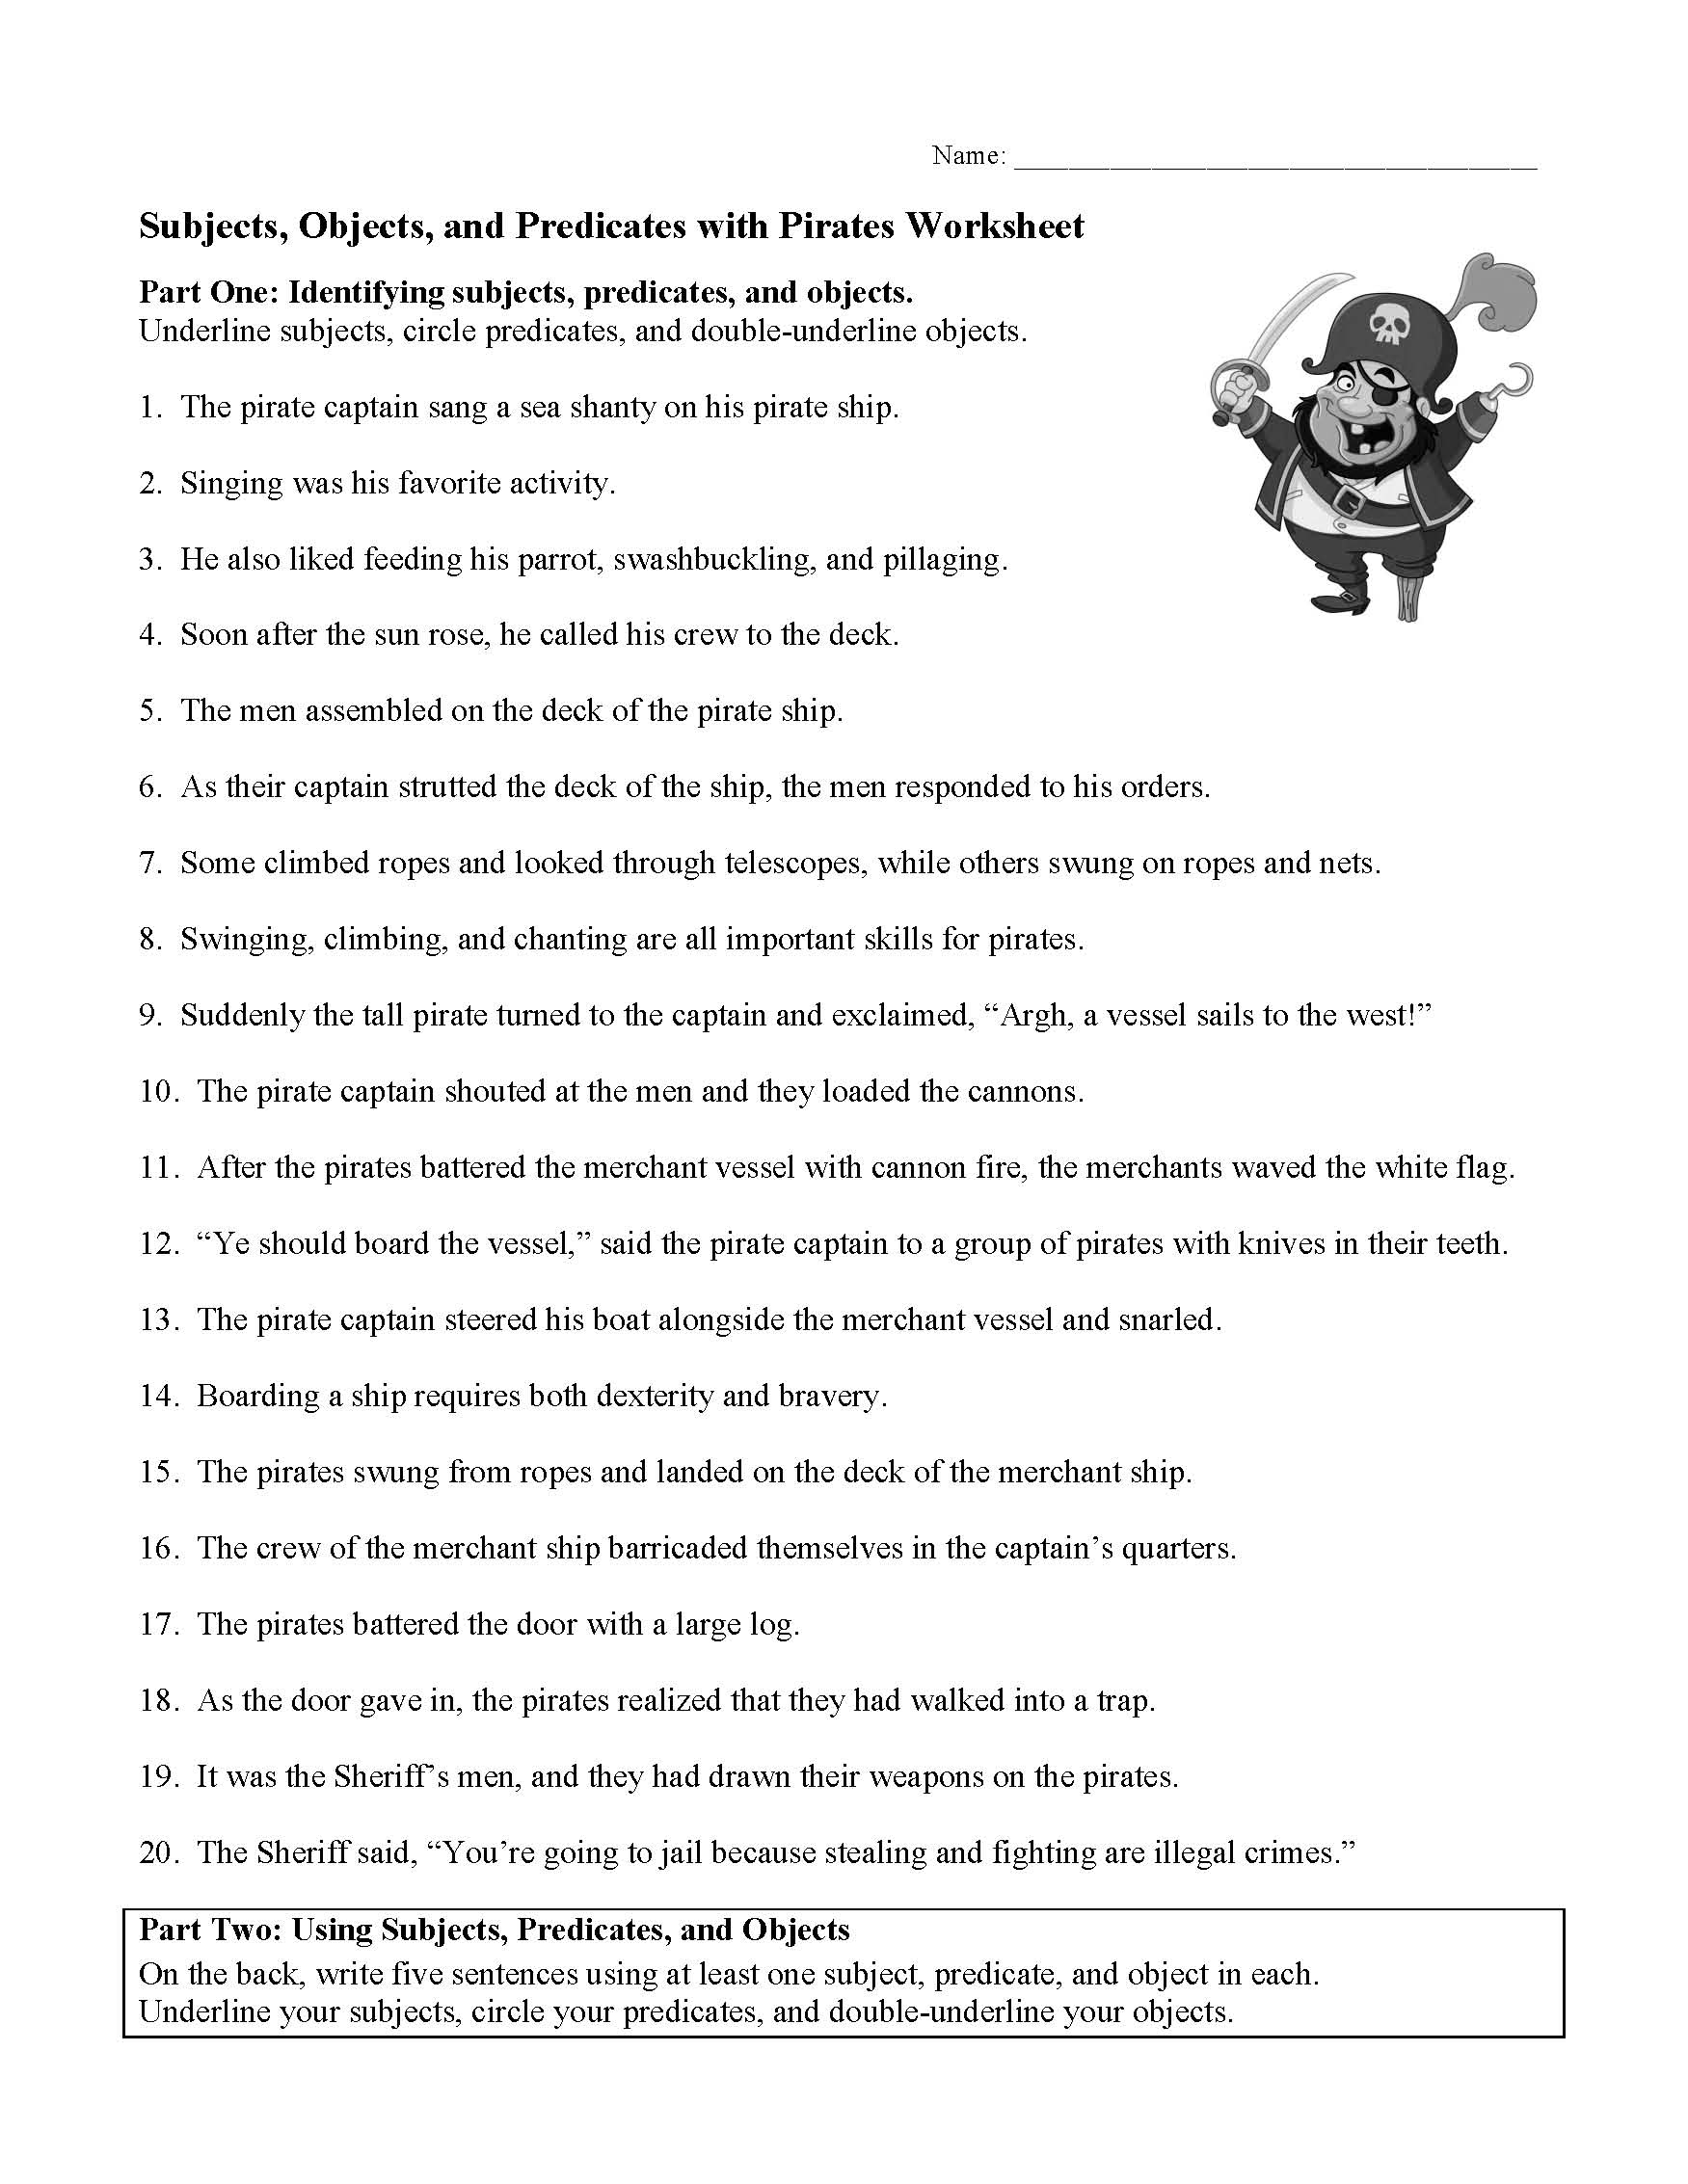 Printables Of Subjects Objects And Predicates With Pirates Worksheet